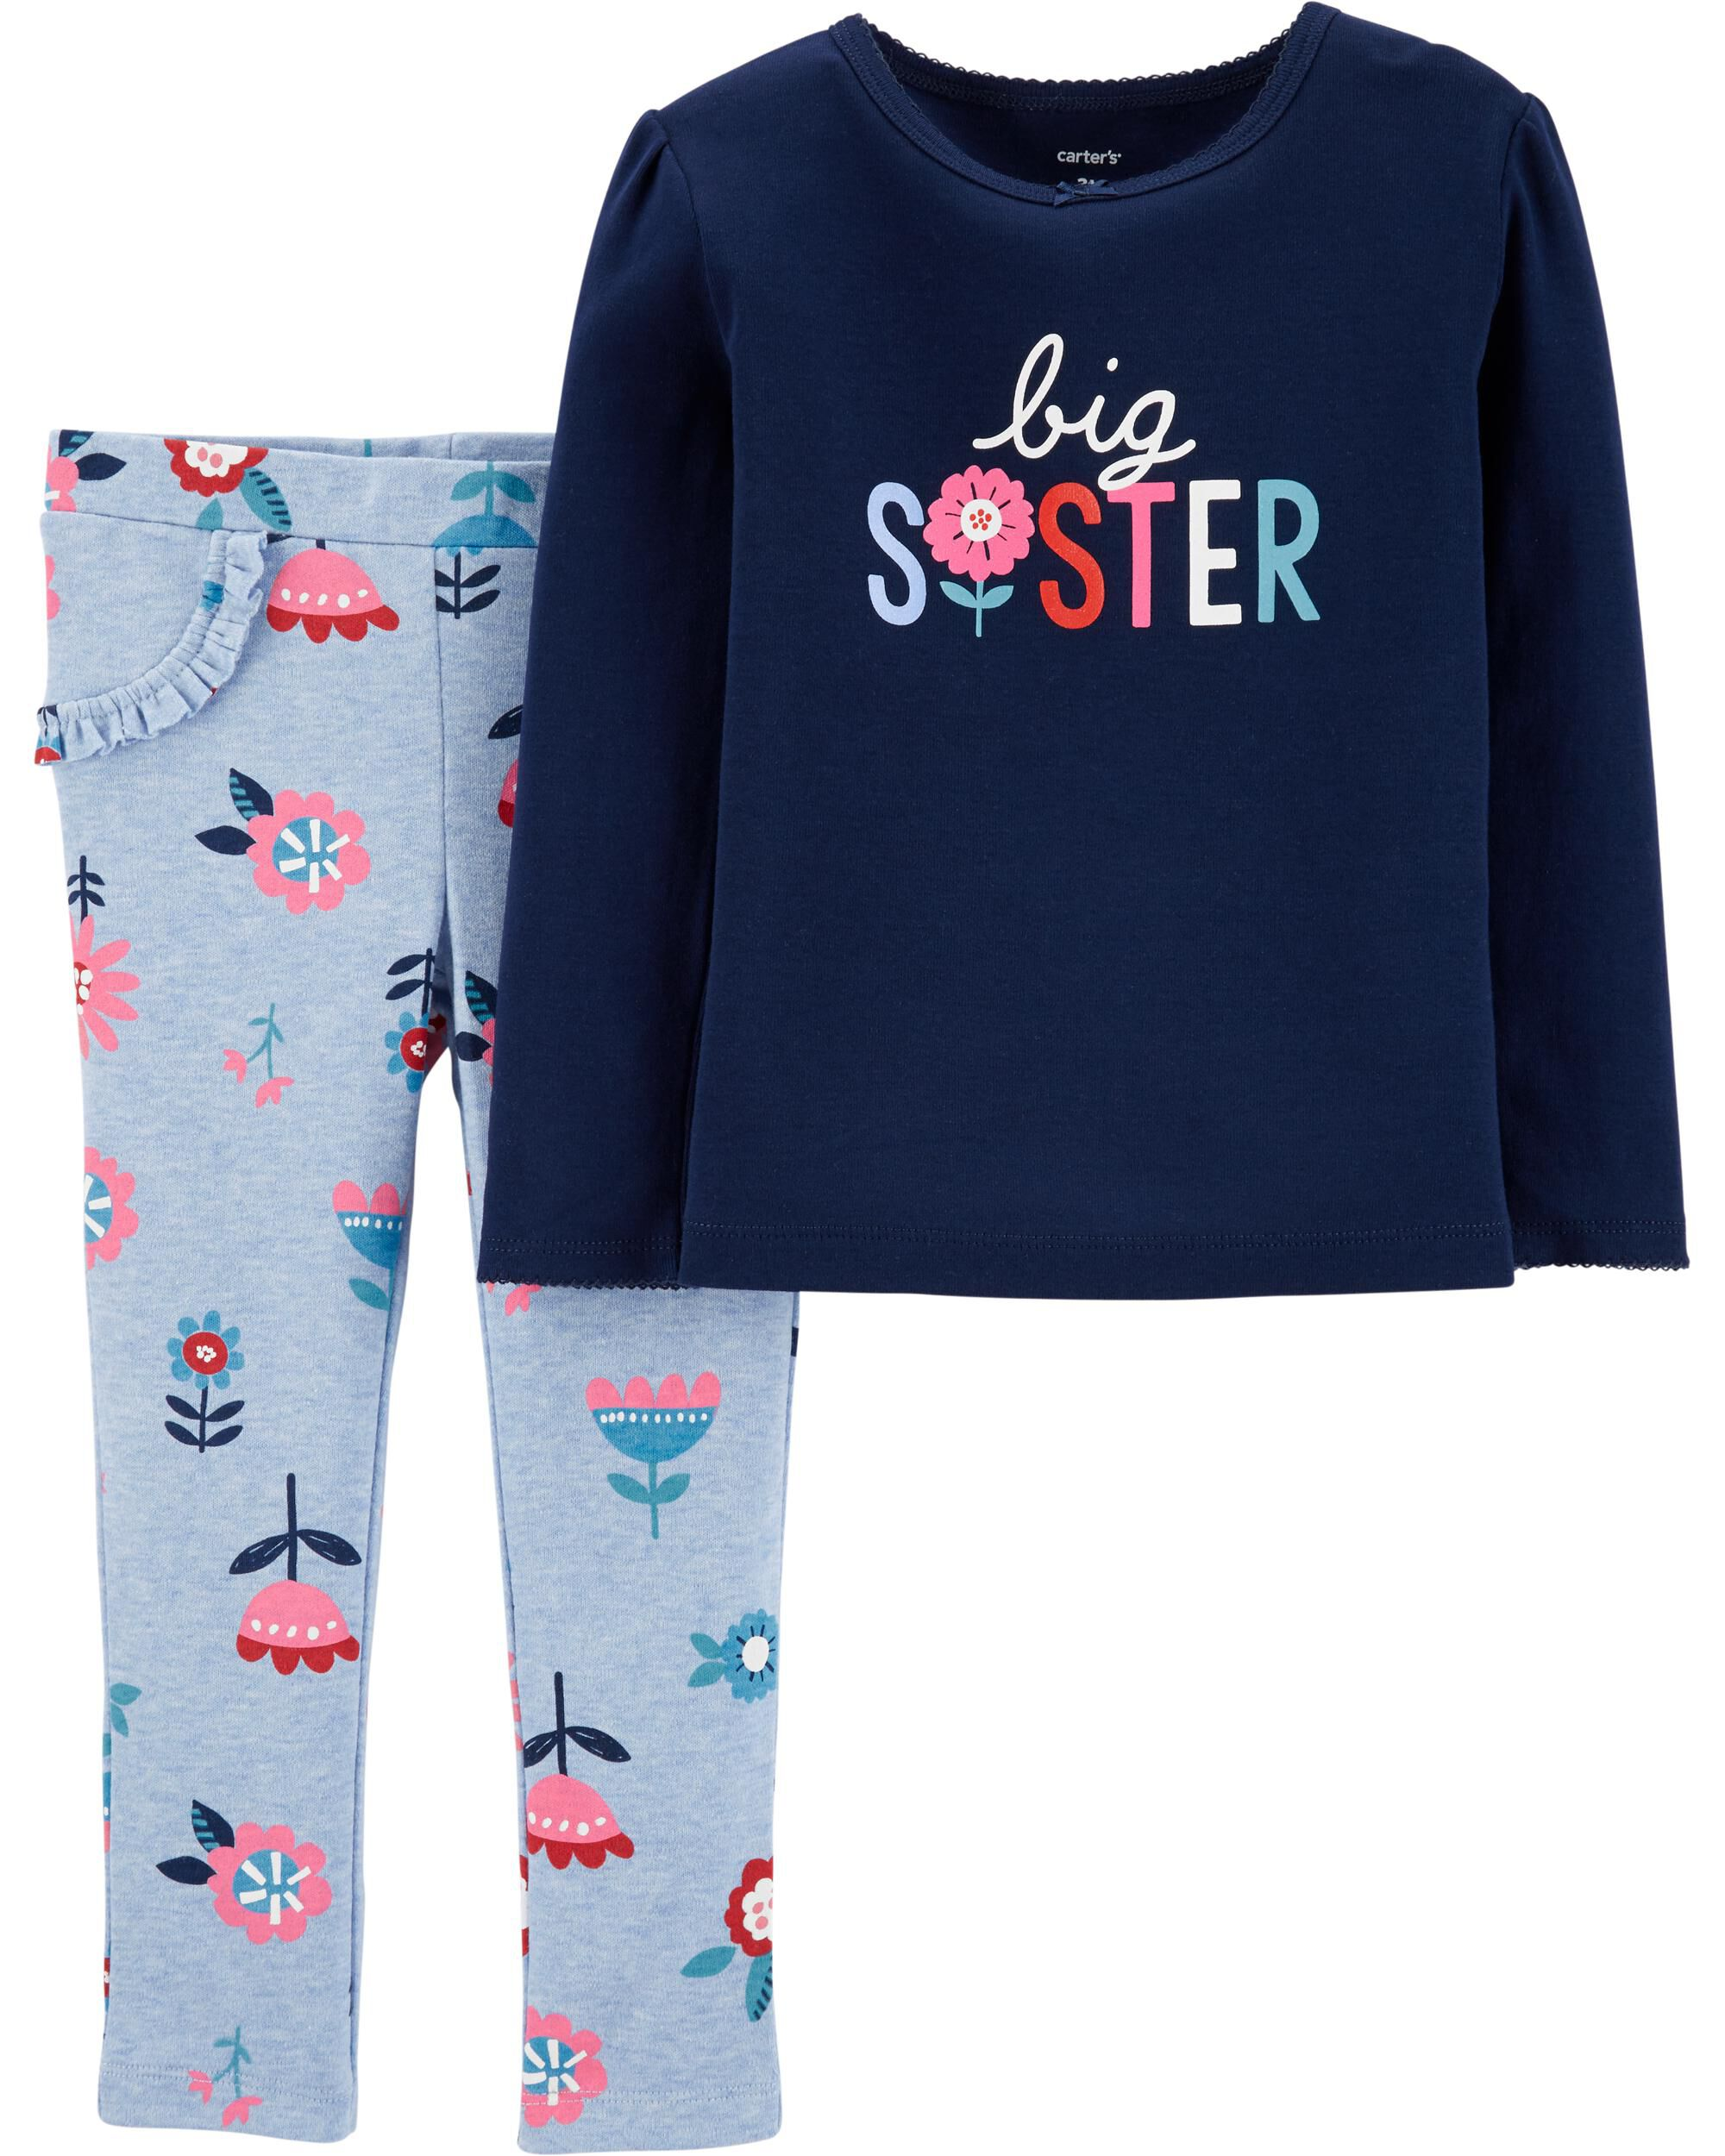 Large Floral Print Carters Girls Toddler Long Sleeve Tunic